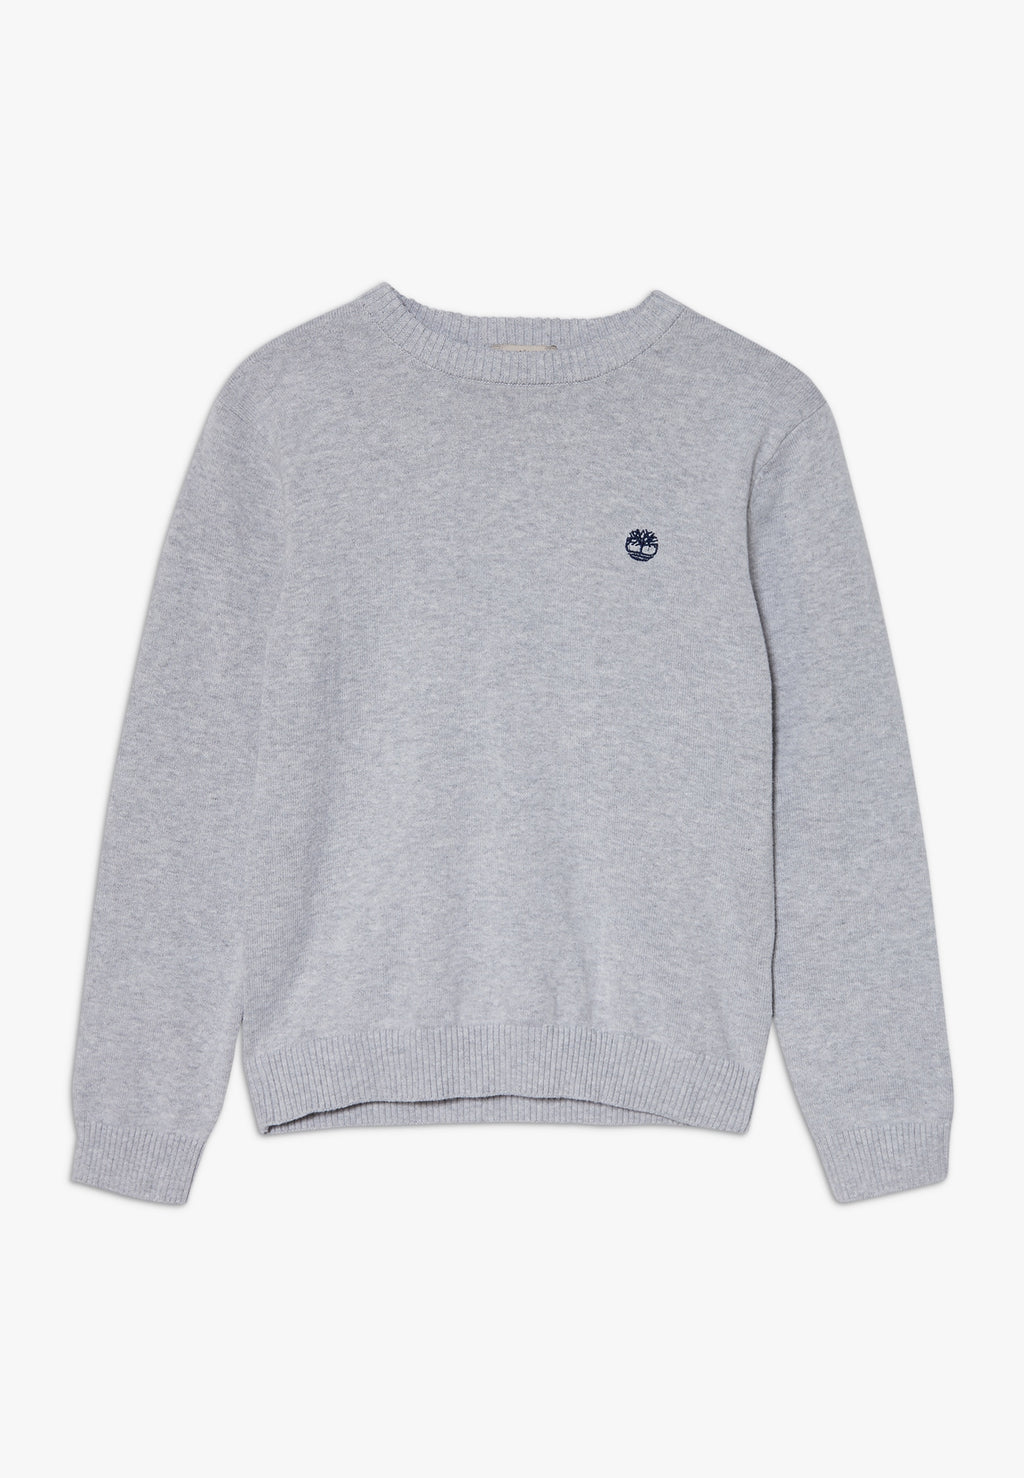 SS20 Timberland Boys Grey Knitted Jumper